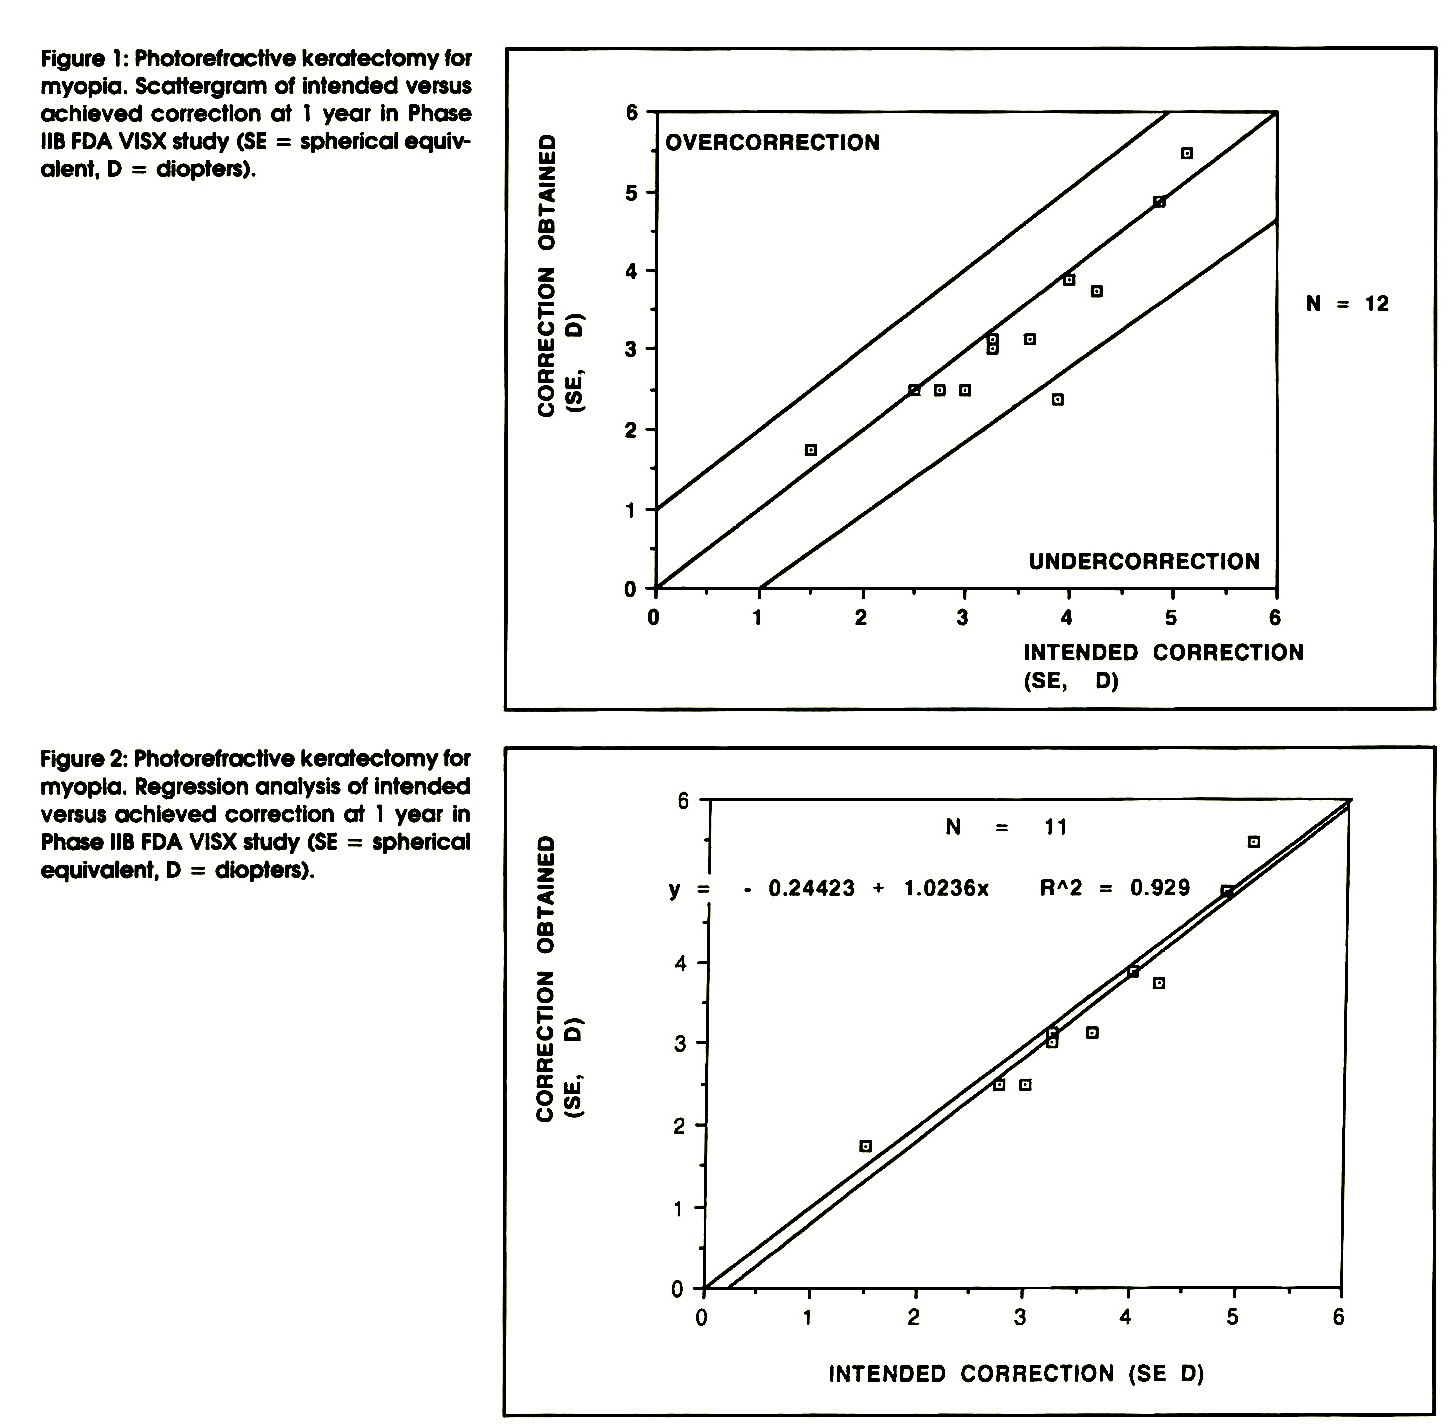 Figure 1: Photorefractive keratectomy for myopia. Scattergram of intended versus achieved correction at 1 year in Phase HB FDA VISX study (SE = spherical equivalent, D = diopters).Figure 2: Photorefractive keratectomy for myopia. Regression analysis of intended versus achieved correction at 1 year in Phase HB FDA VISX study (SE = spherical equivalent, D = diopters).